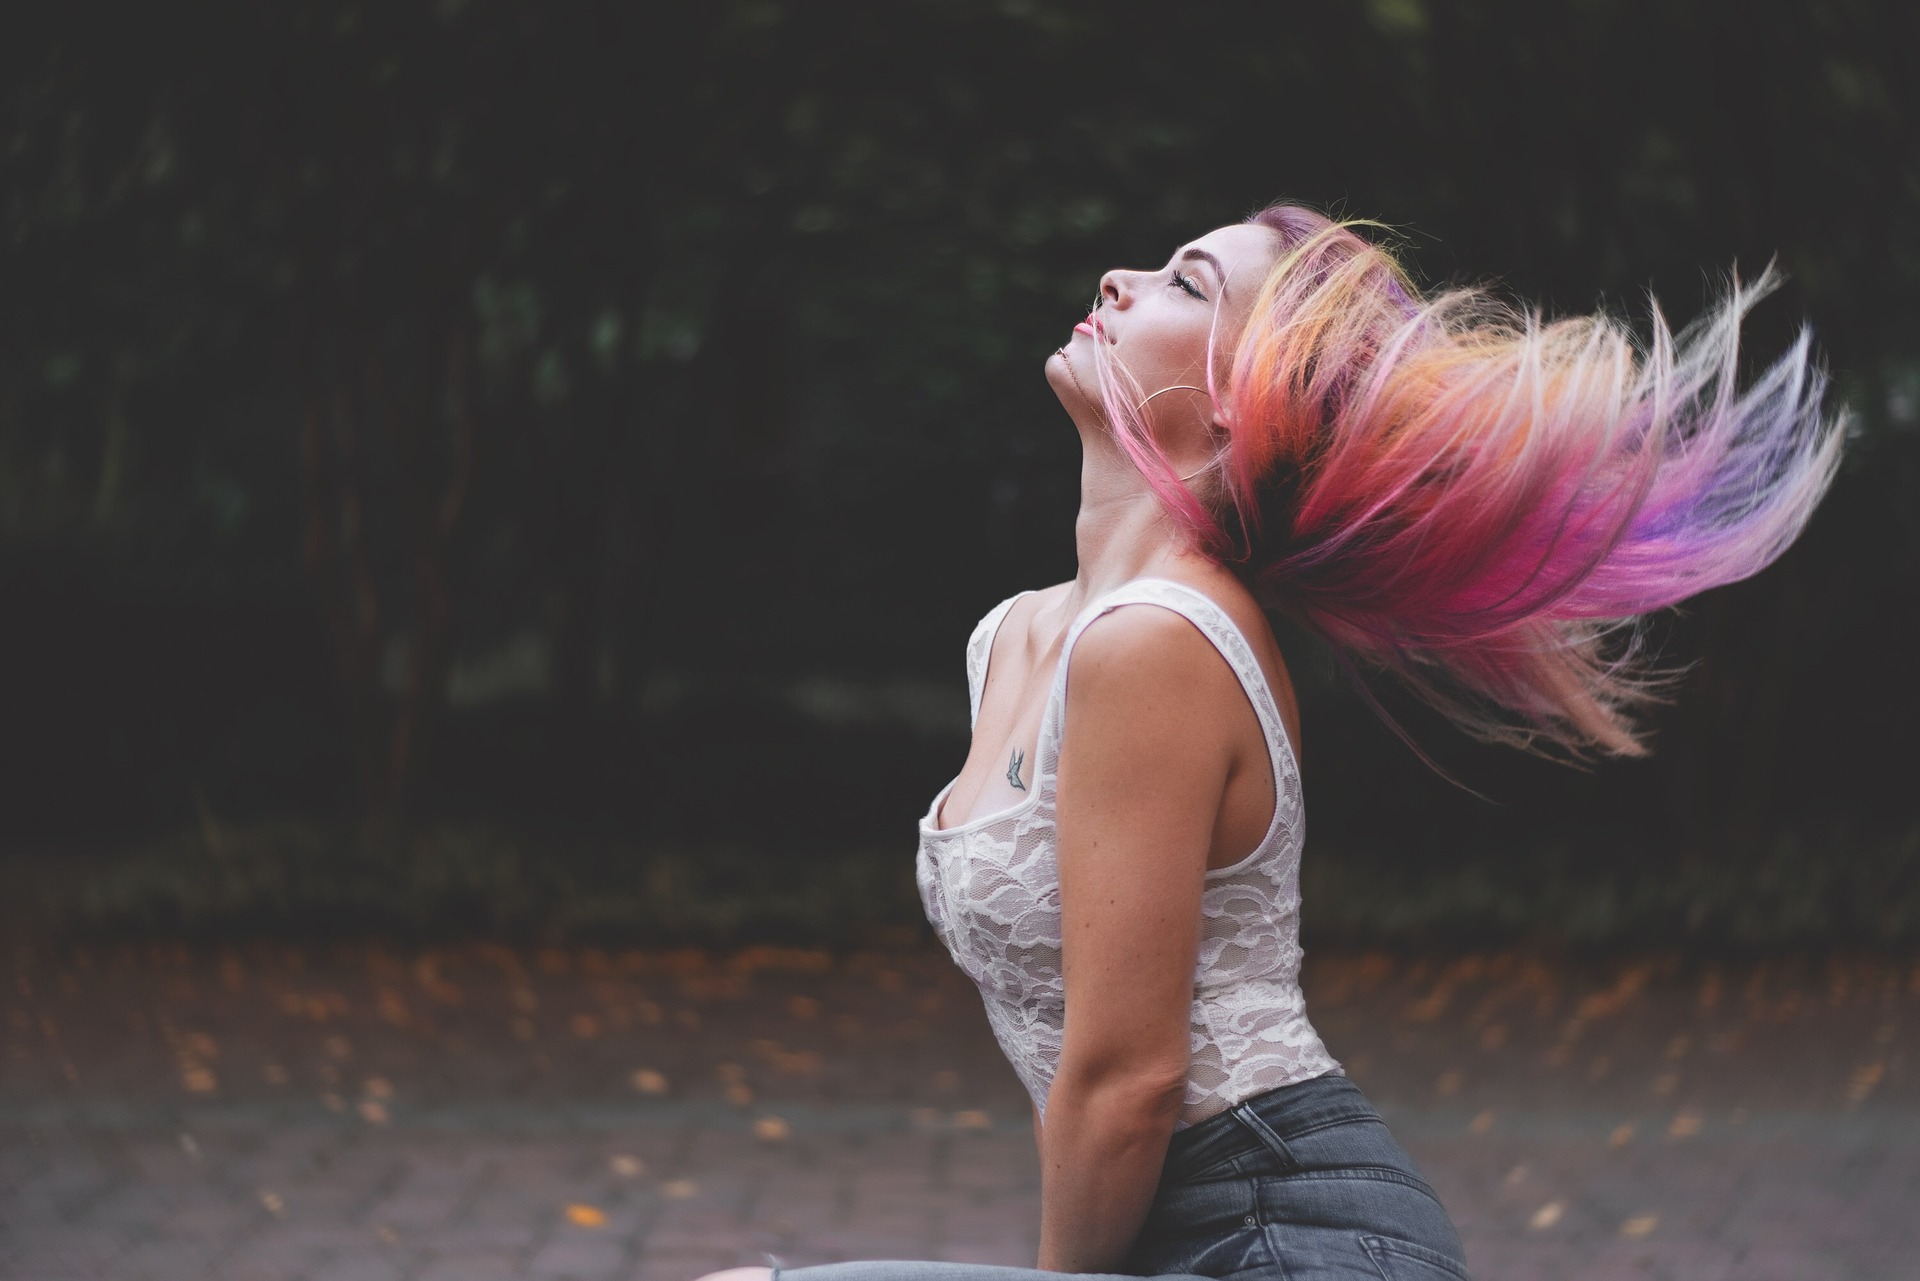 Woman with colorful hair.